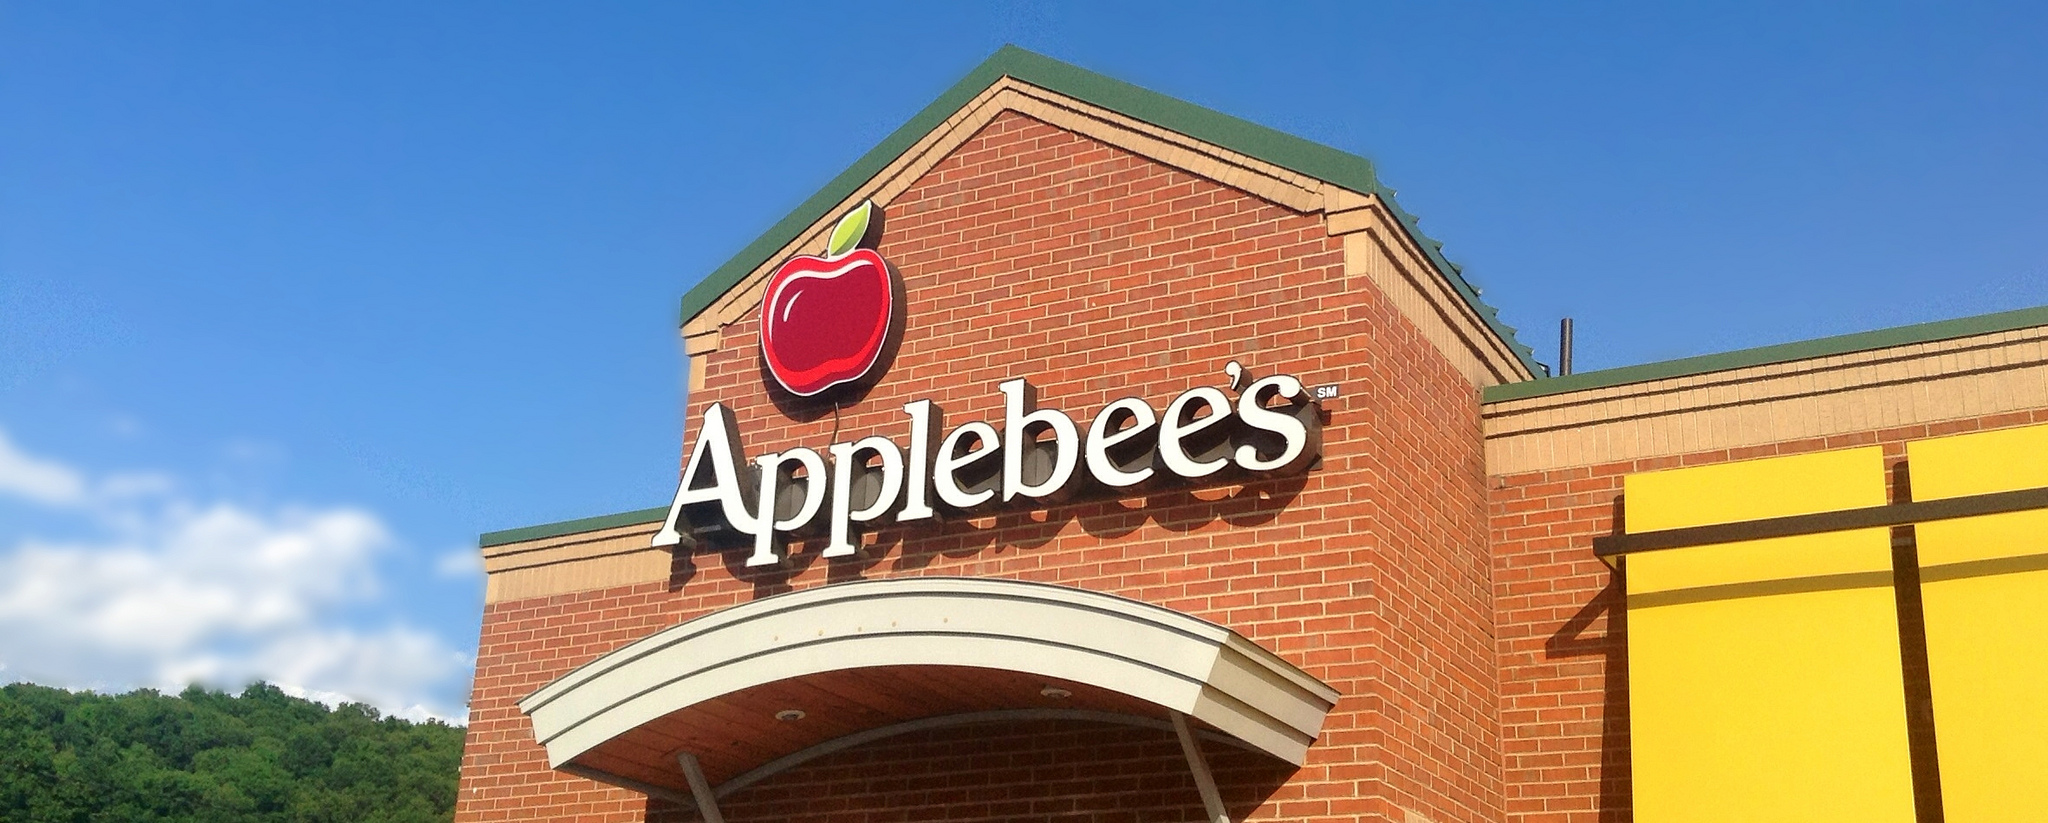 Woman Files Lawsuit Against Applebee's Claiming She Found Bloody Fingertip In Her Salad